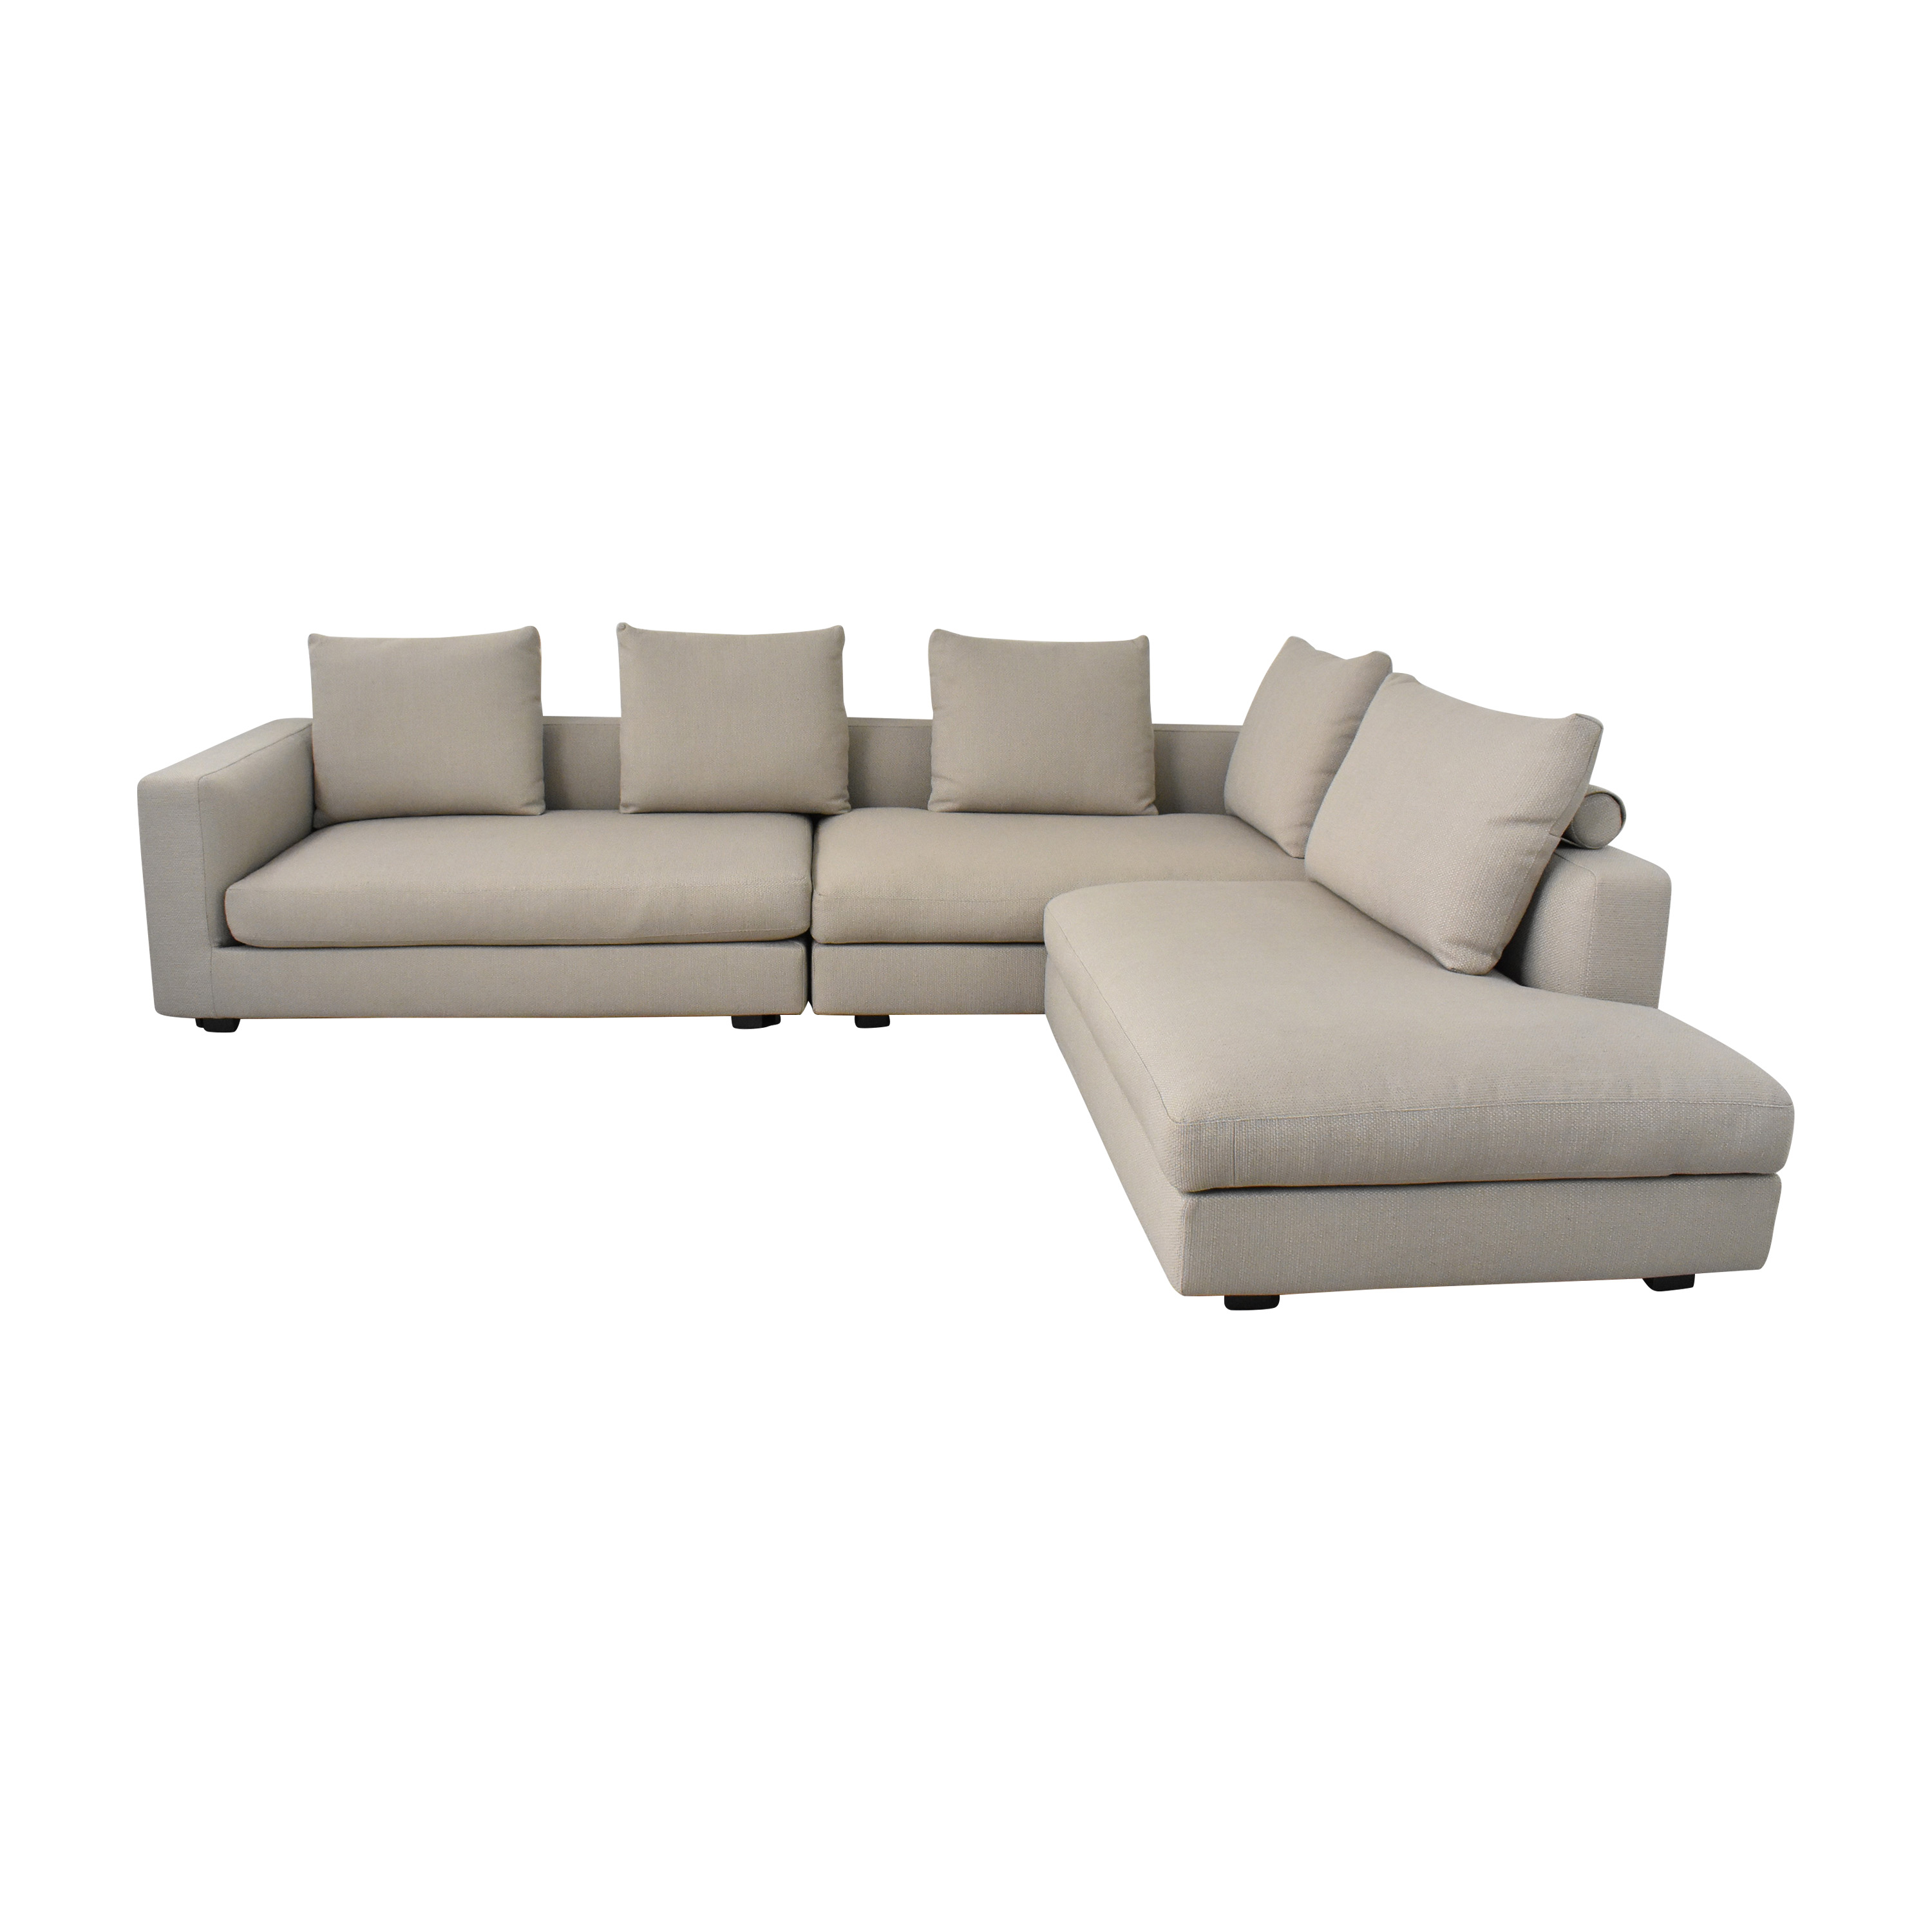 Calligaris Calligaris Clouds Sectional Sofa with Chaise nj